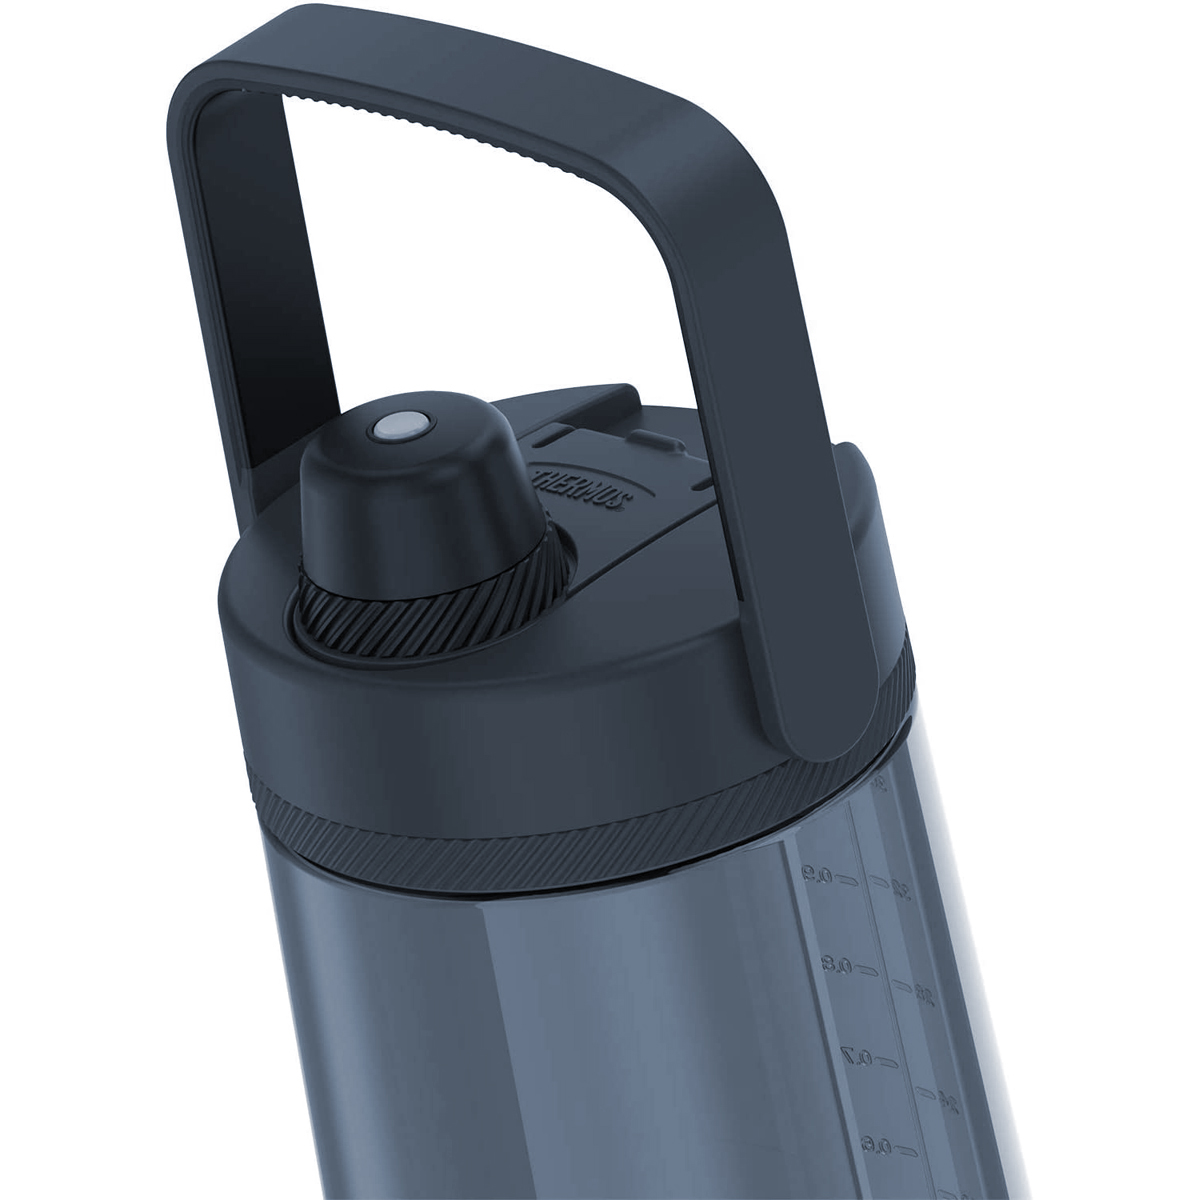 Thermos-40-oz-Guardian-Collection-Hard-Plastic-Hydration-Bottle-with-Spout thumbnail 9